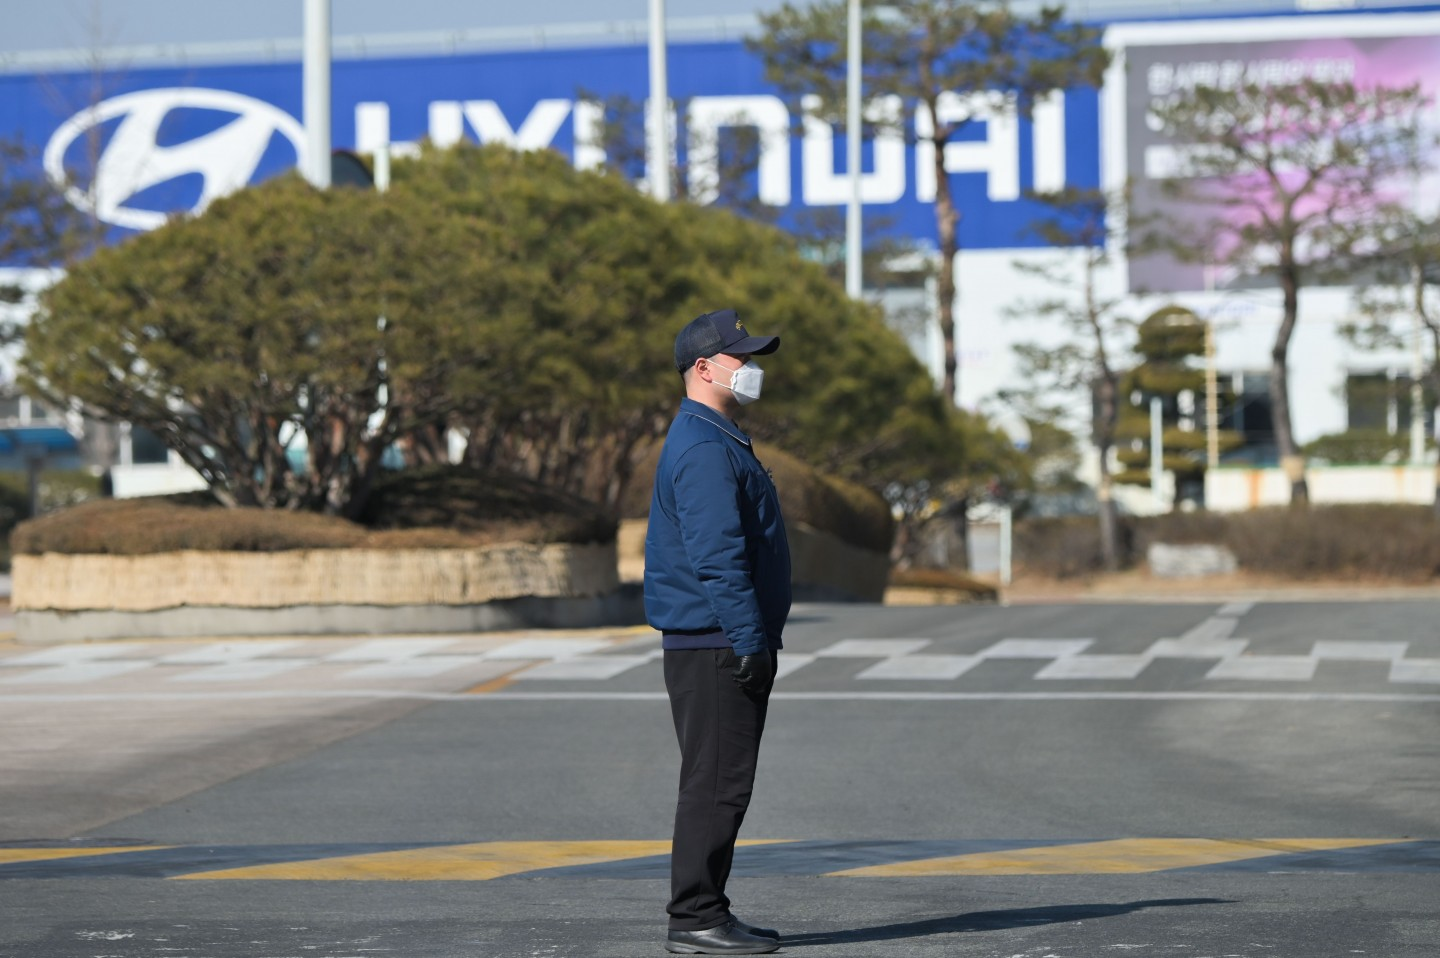 In a photo taken on 10 February 2020 a security guard stands at the entrance to the Hyundai Motor Asan Factory in Asan, south of Seoul. Hyundai has had to suspend production at its factories across South Korea, putting 25,000 workers on forced leave and partial wages, hamstrung by a lack of parts with the coronavirus outbreak crippling China's industrial output. (Yelim Lee/AFP)